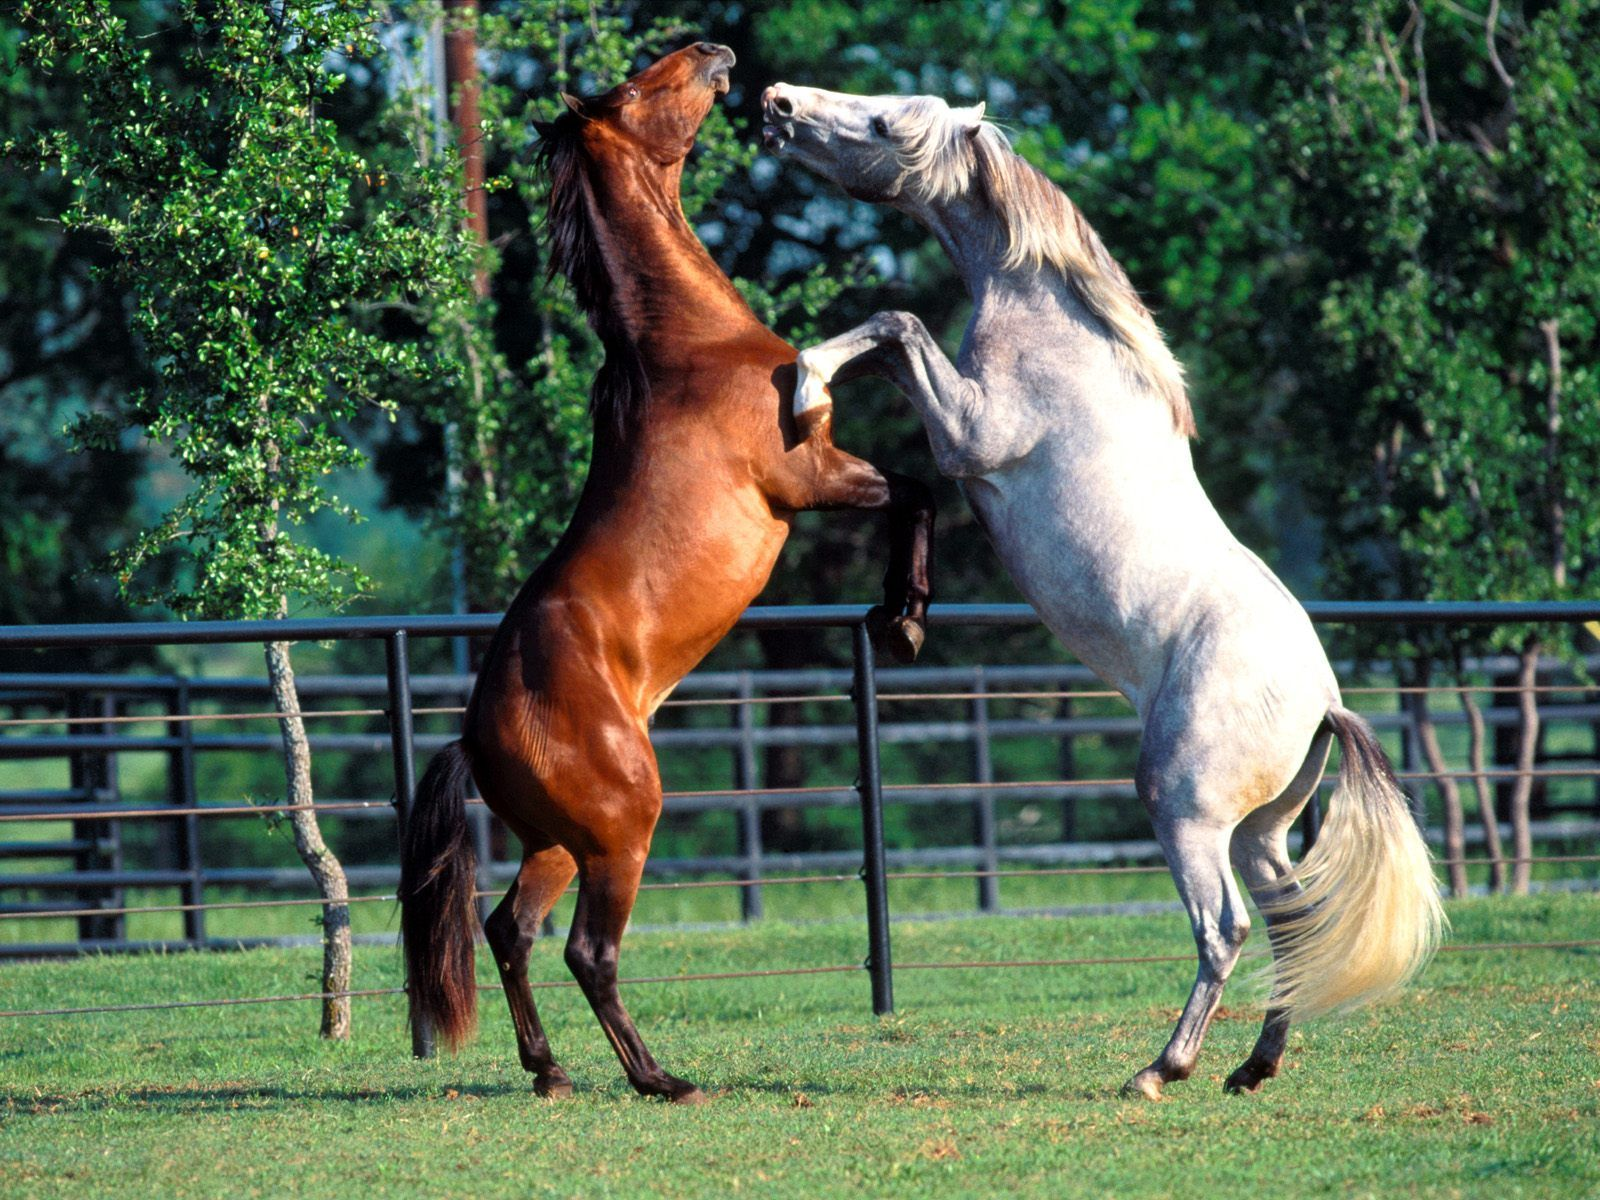 Great   Wallpaper Horse Lightning - two+horse+playing  Perfect Image Reference_95839.jpg